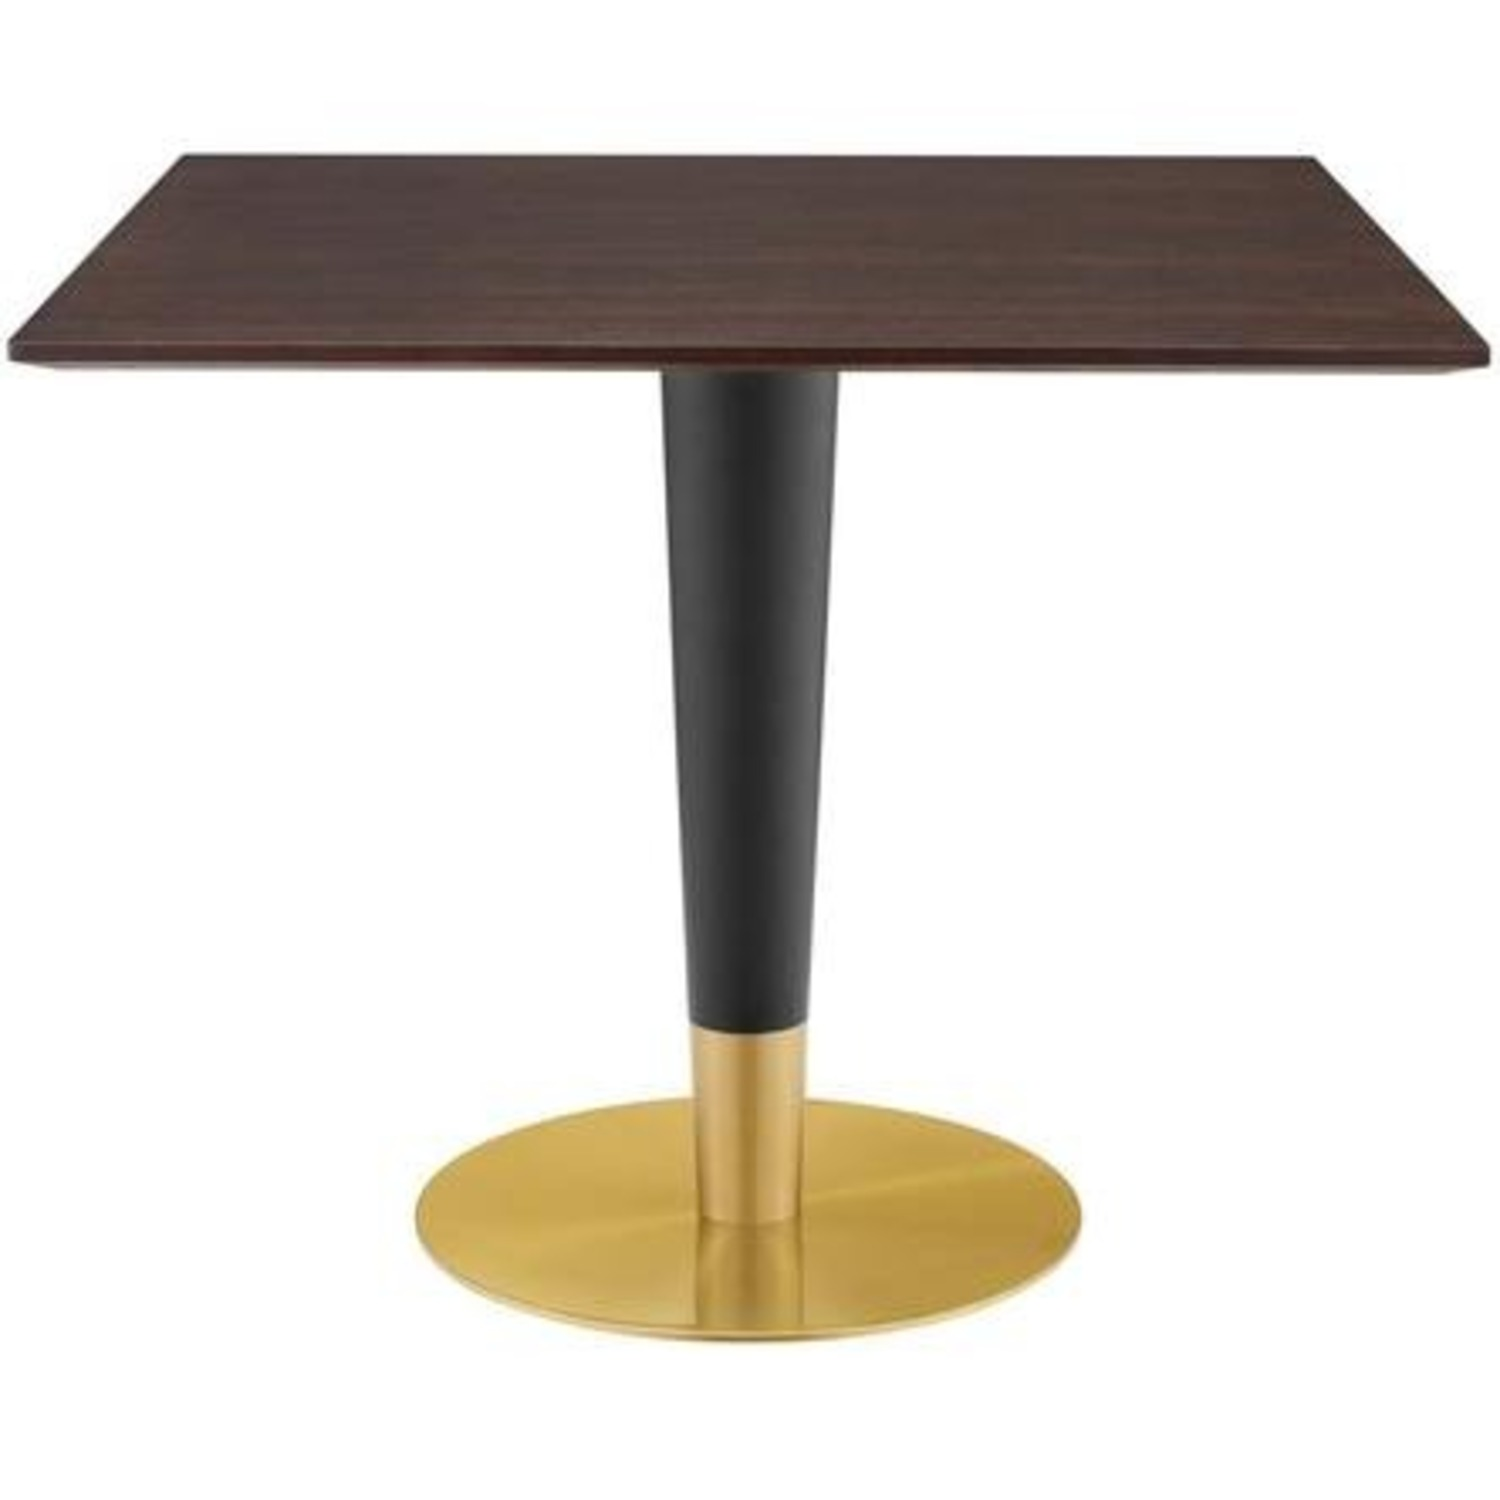 Modern Dining Table In Square Cherry Walnut Top - image-0